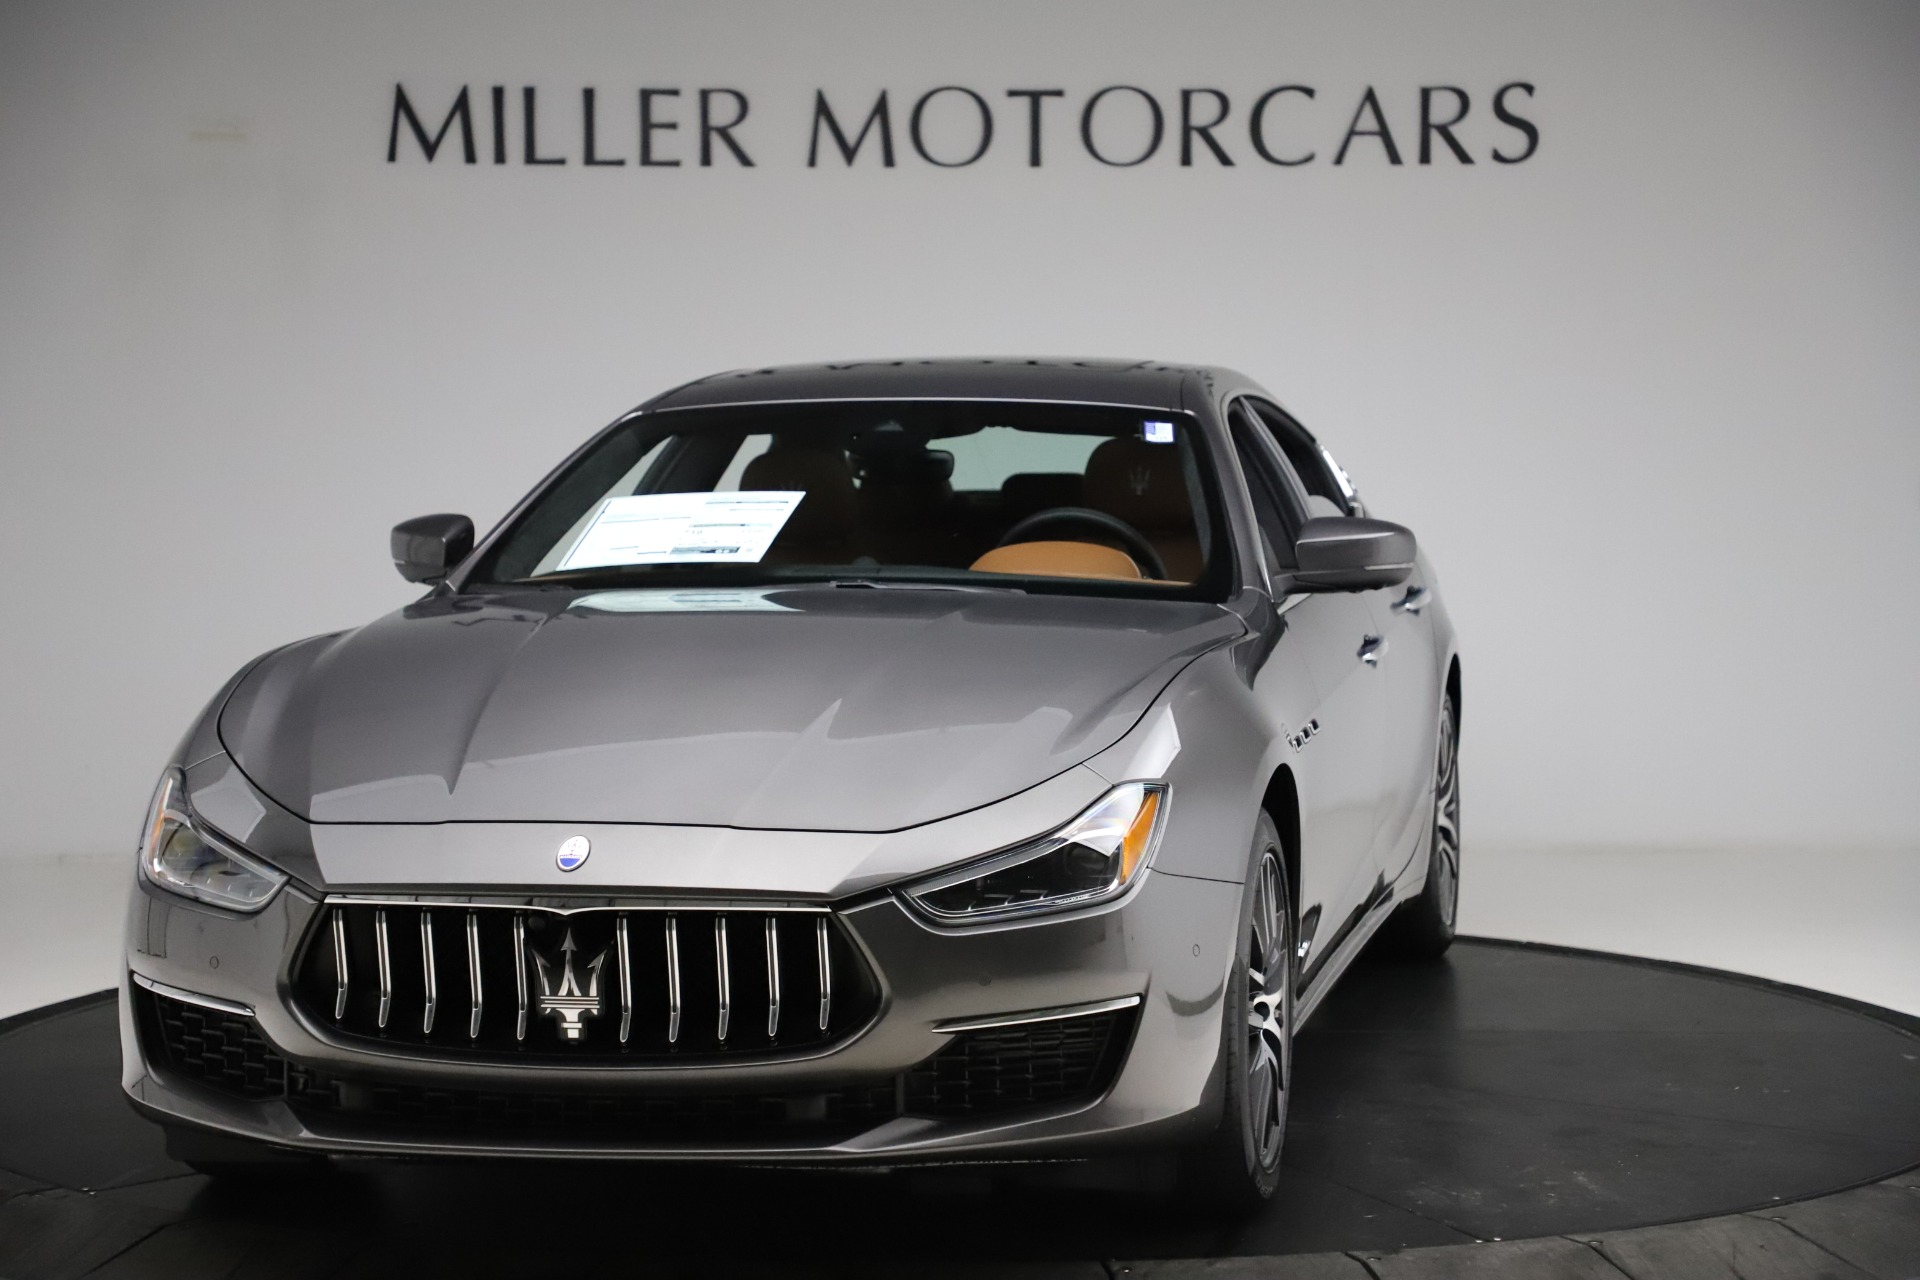 New 2021 Maserati Ghibli S Q4 GranLusso for sale Sold at McLaren Greenwich in Greenwich CT 06830 1